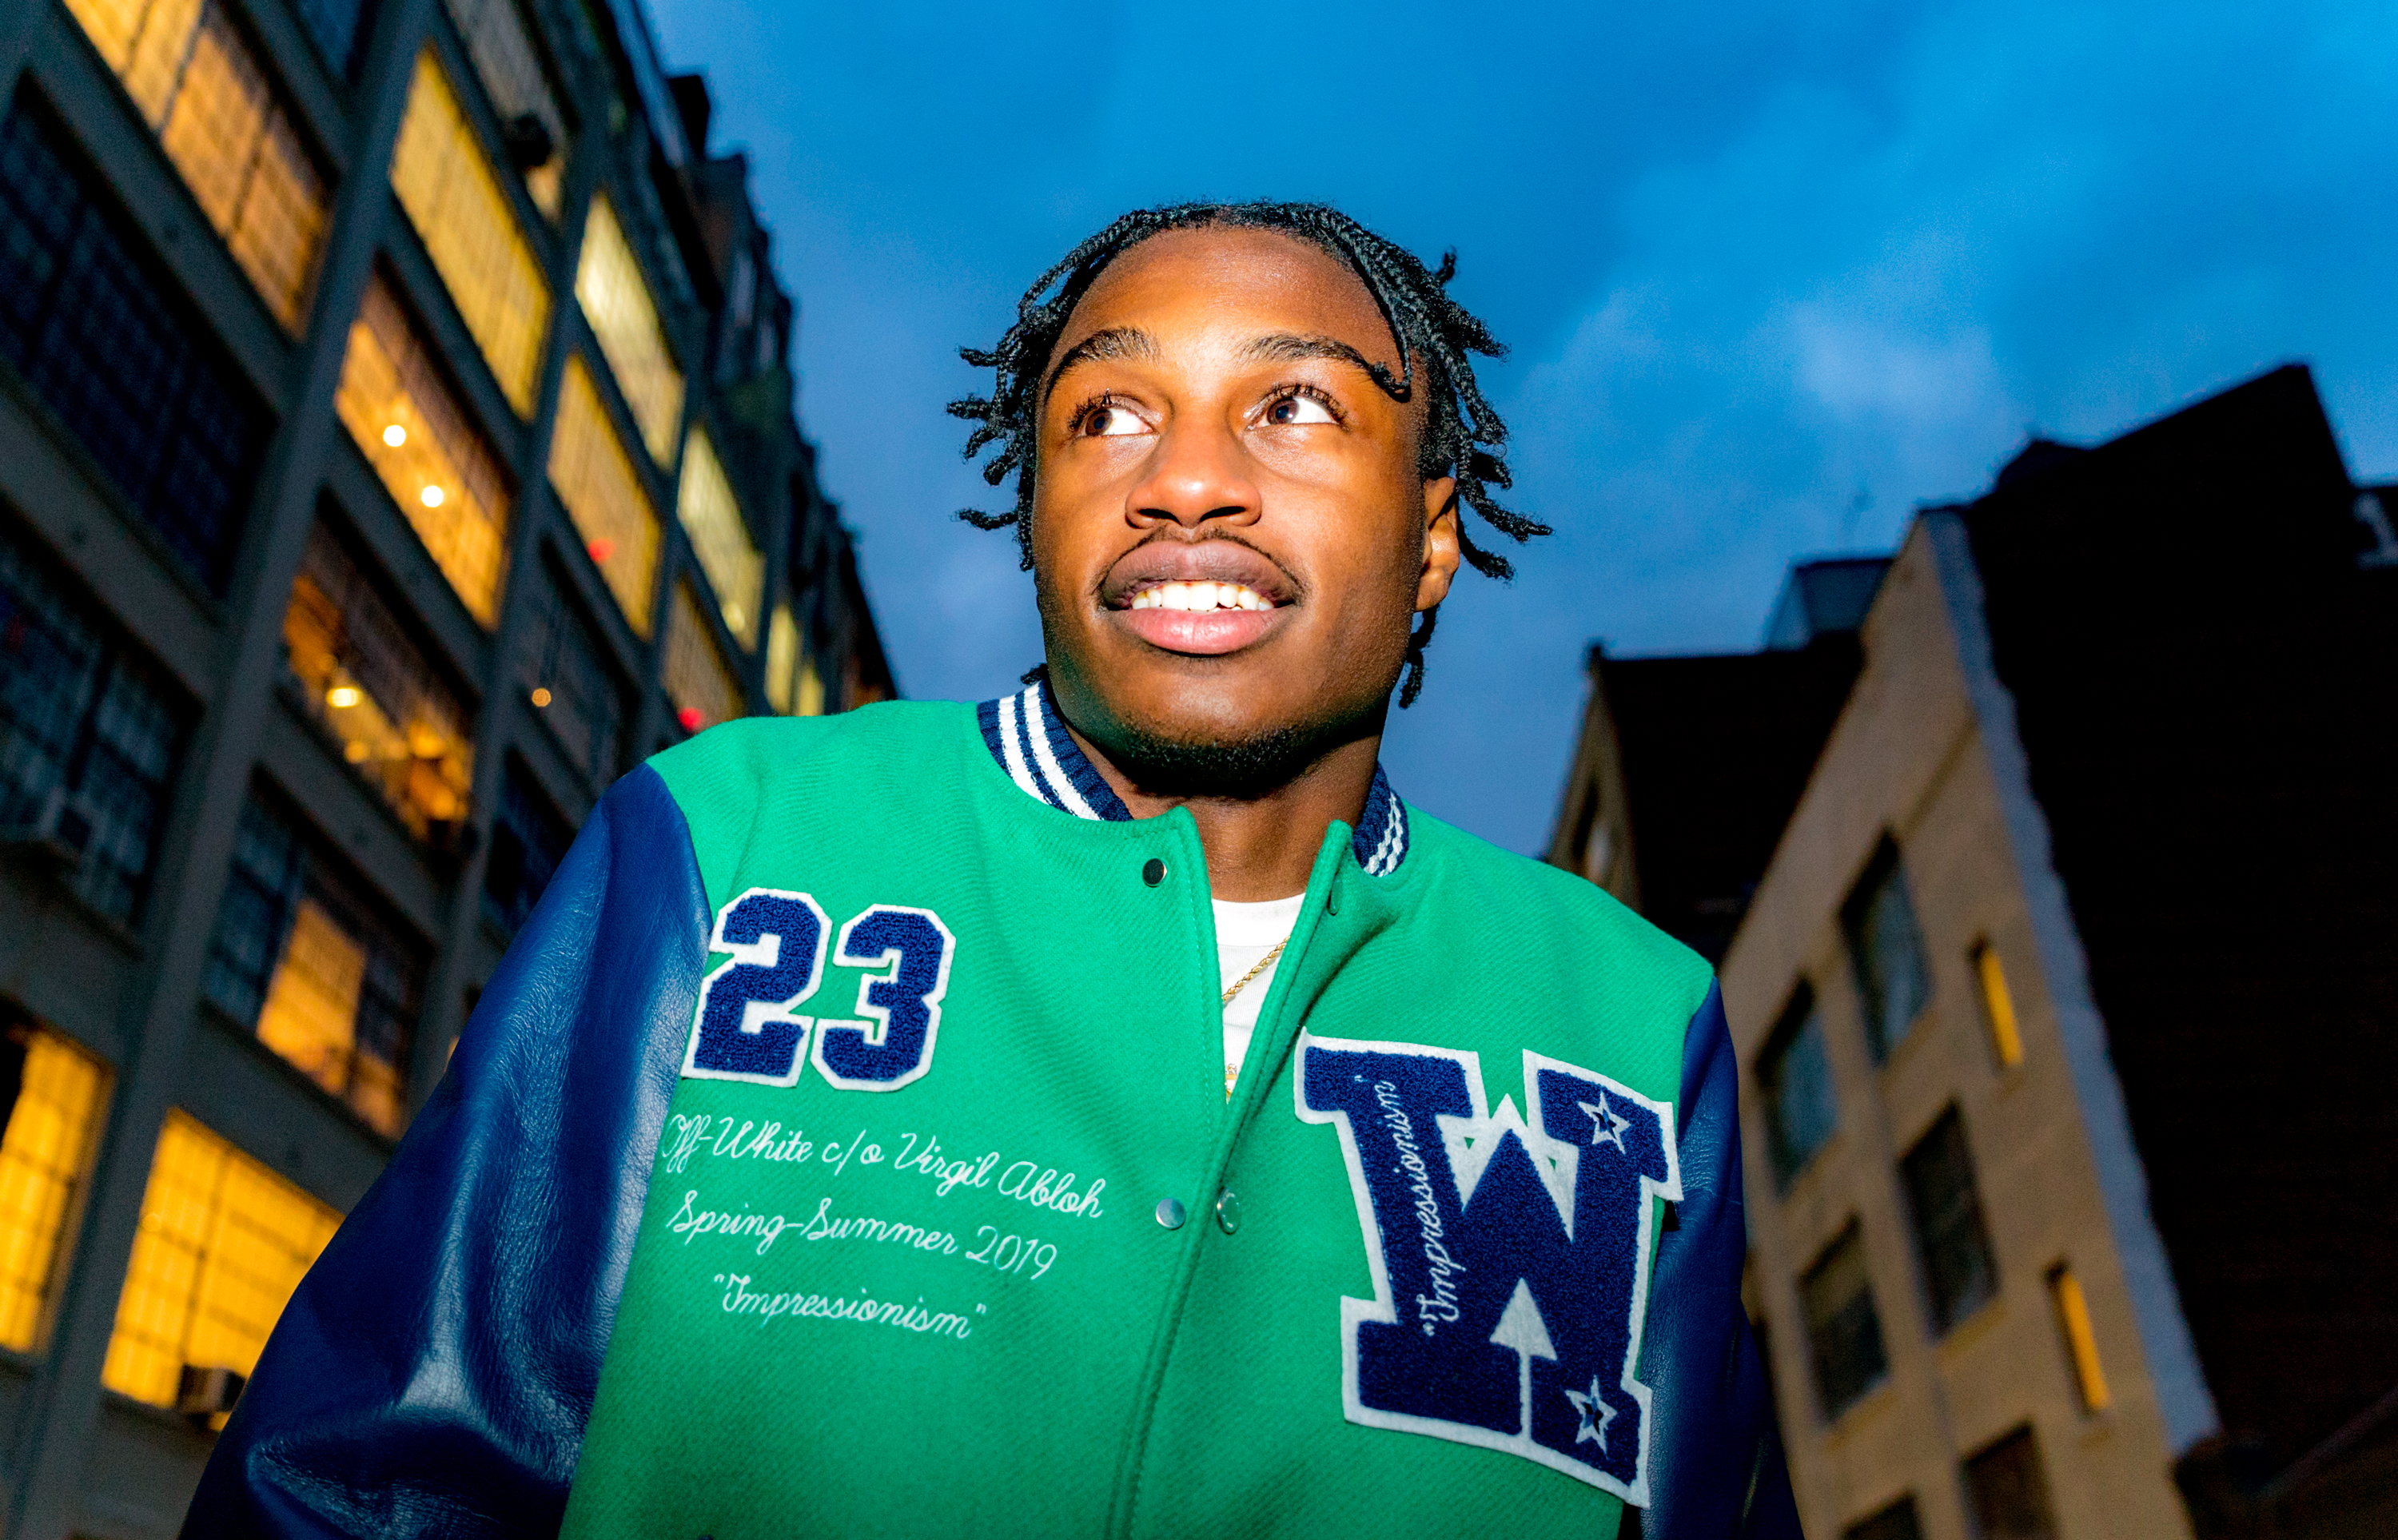 Nothing But Blue Skies Big Brother >> Lil Tjay Artist You Need To Know Rolling Stone